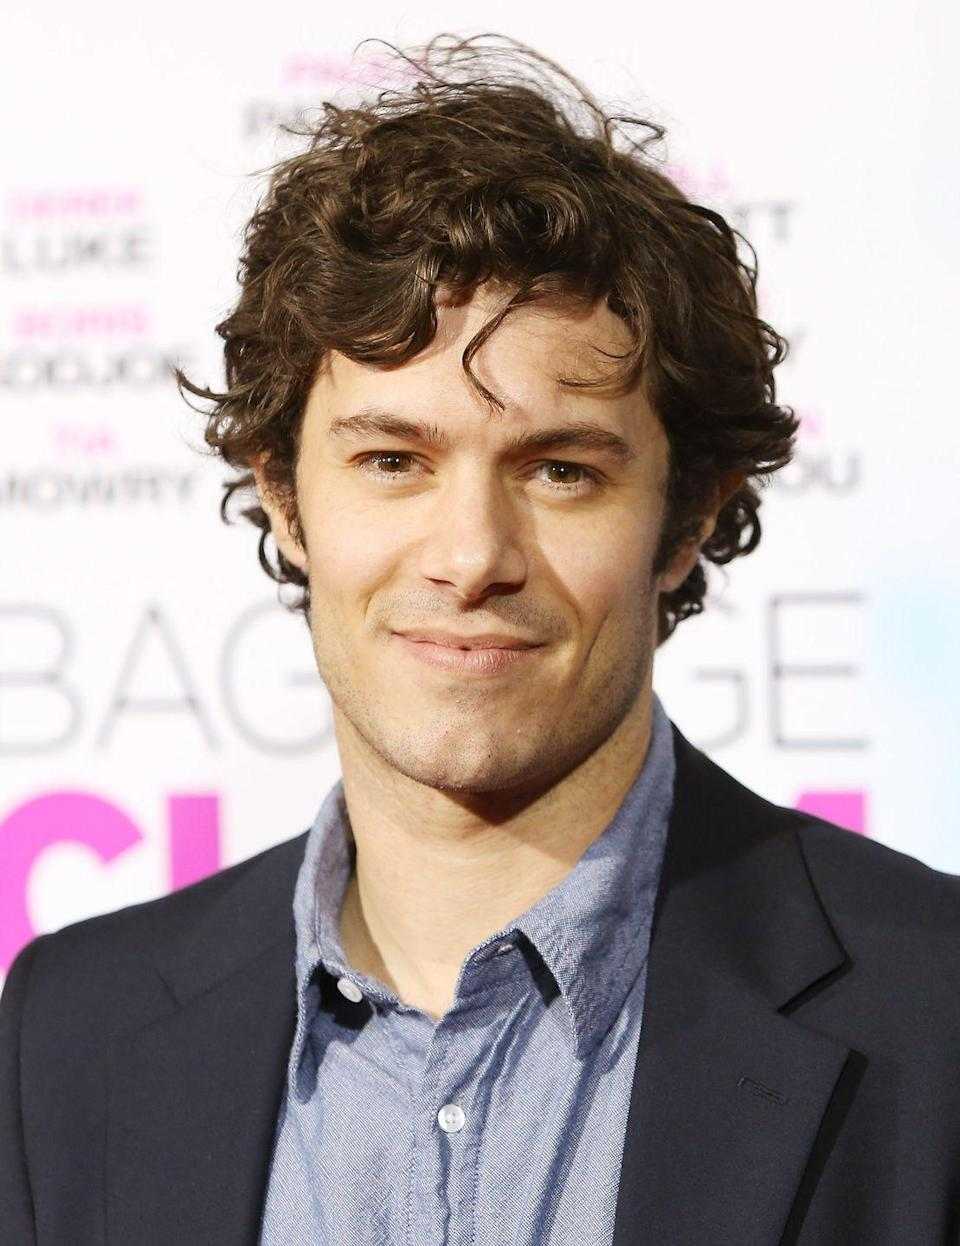 """<p>It's not that Adam Brody hates the character he played on <em>The O.C</em>., it's that he hates talking about him now. (Understandable.) In an interview with the <span><em>Huffington Post</em></span>, the actor got candid about why he's kind of annoyed to keep talking about Seth. """"It gets boring, that's all. The only way it bothers me—it's not that I'm not proud of it—it's that I've exhausted the conversations about it, in my mind,"""" Brody said. """"Forgive me for comparing myself in any way—and I'm not—but Harrison Ford, I understand why he would be crotchety talking about <em>Star Wars</em>.""""</p>"""